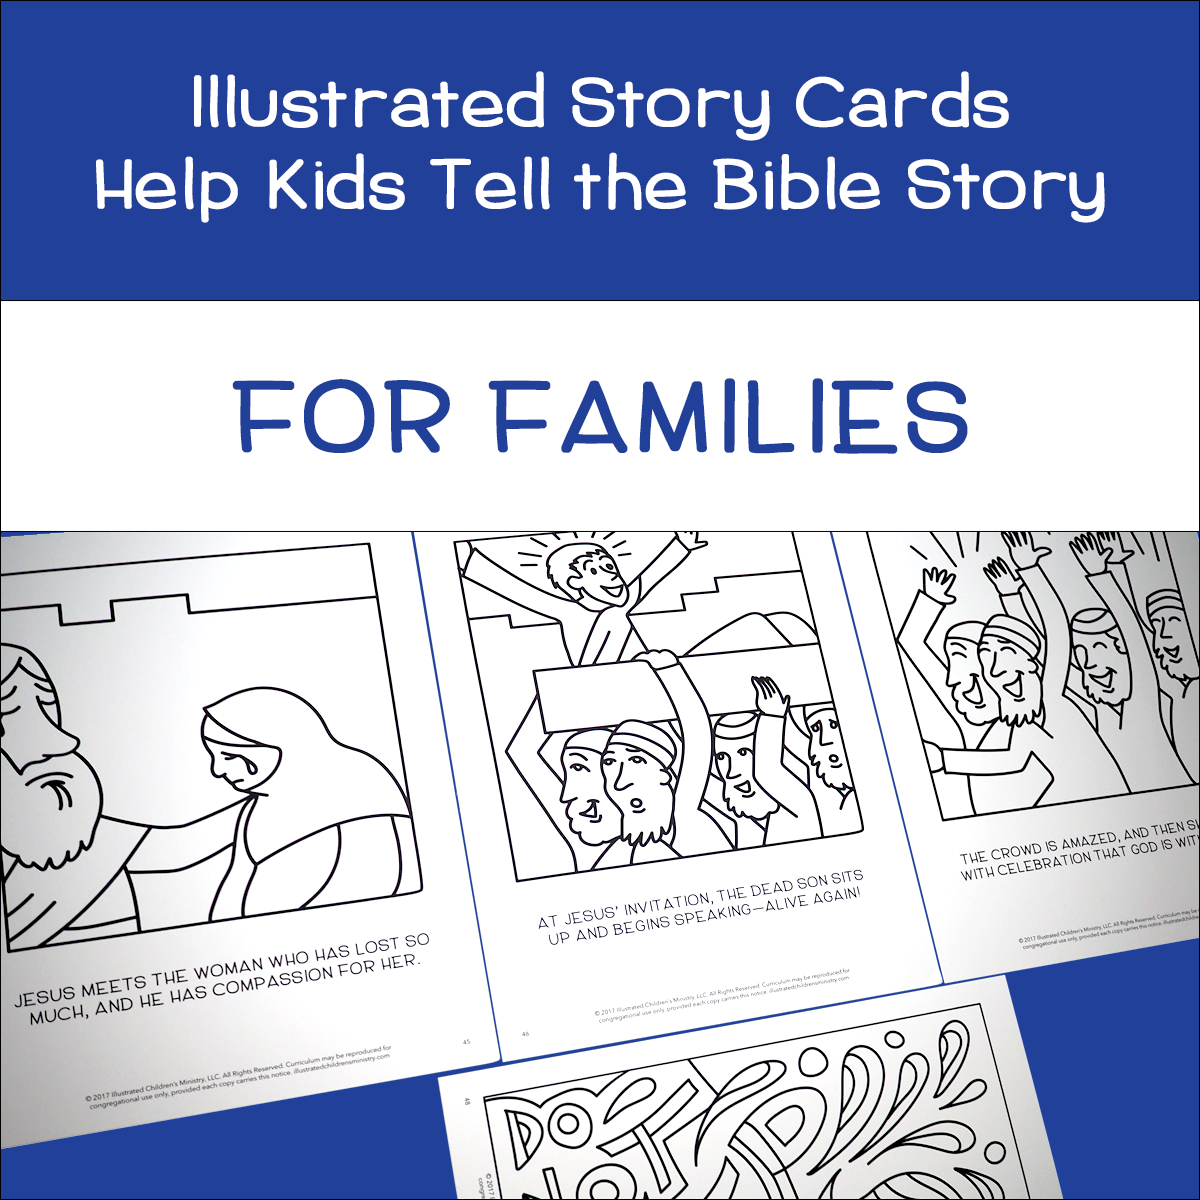 An Illustrated Compassion for Families Story Cards